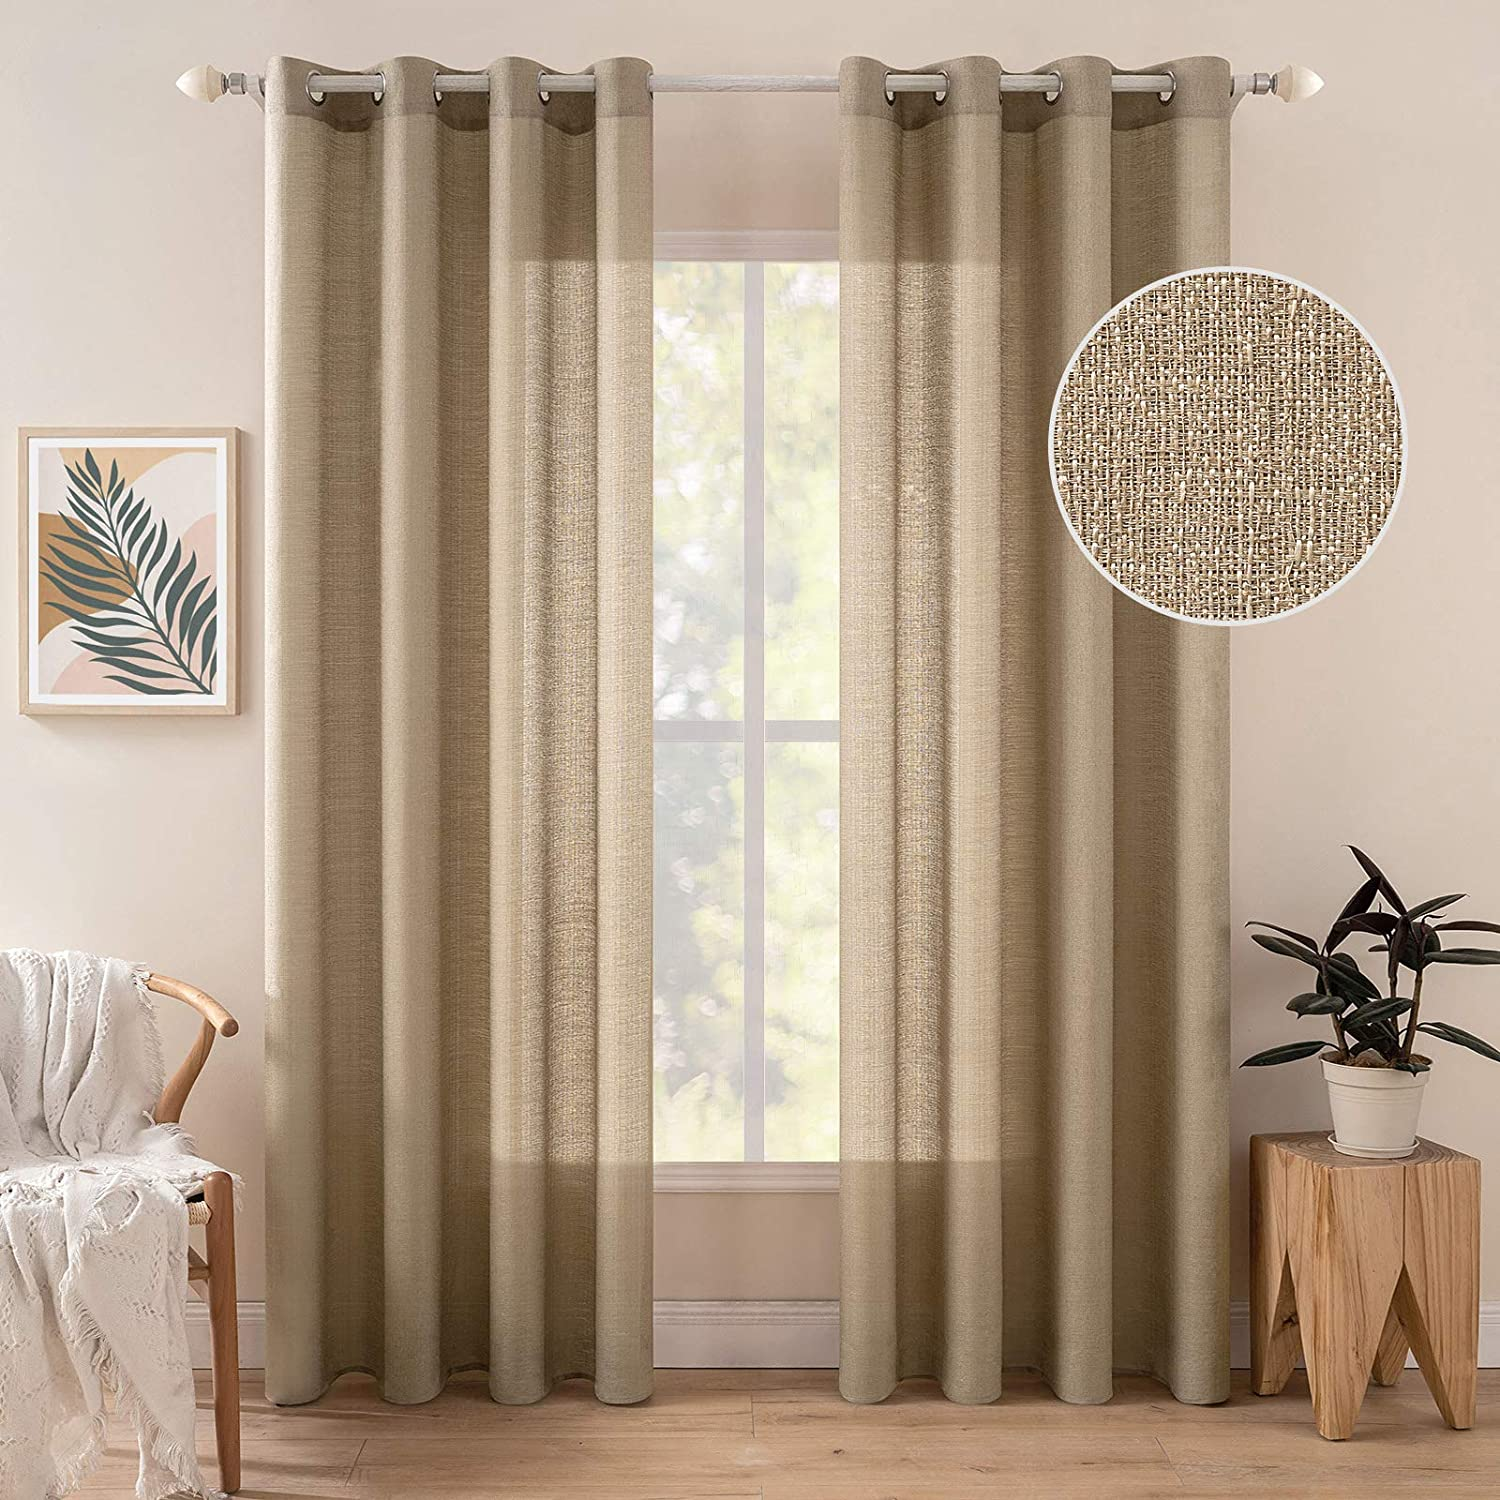 MIULEE Natural Linen Textured Sheer Curtains Window Treatments for Bedroom Living Room Extra Long Semi Light Filtering Privacy Curtains Grommet Voile Drapes 2 Panels W 52 x L 108 inches Gold Brown